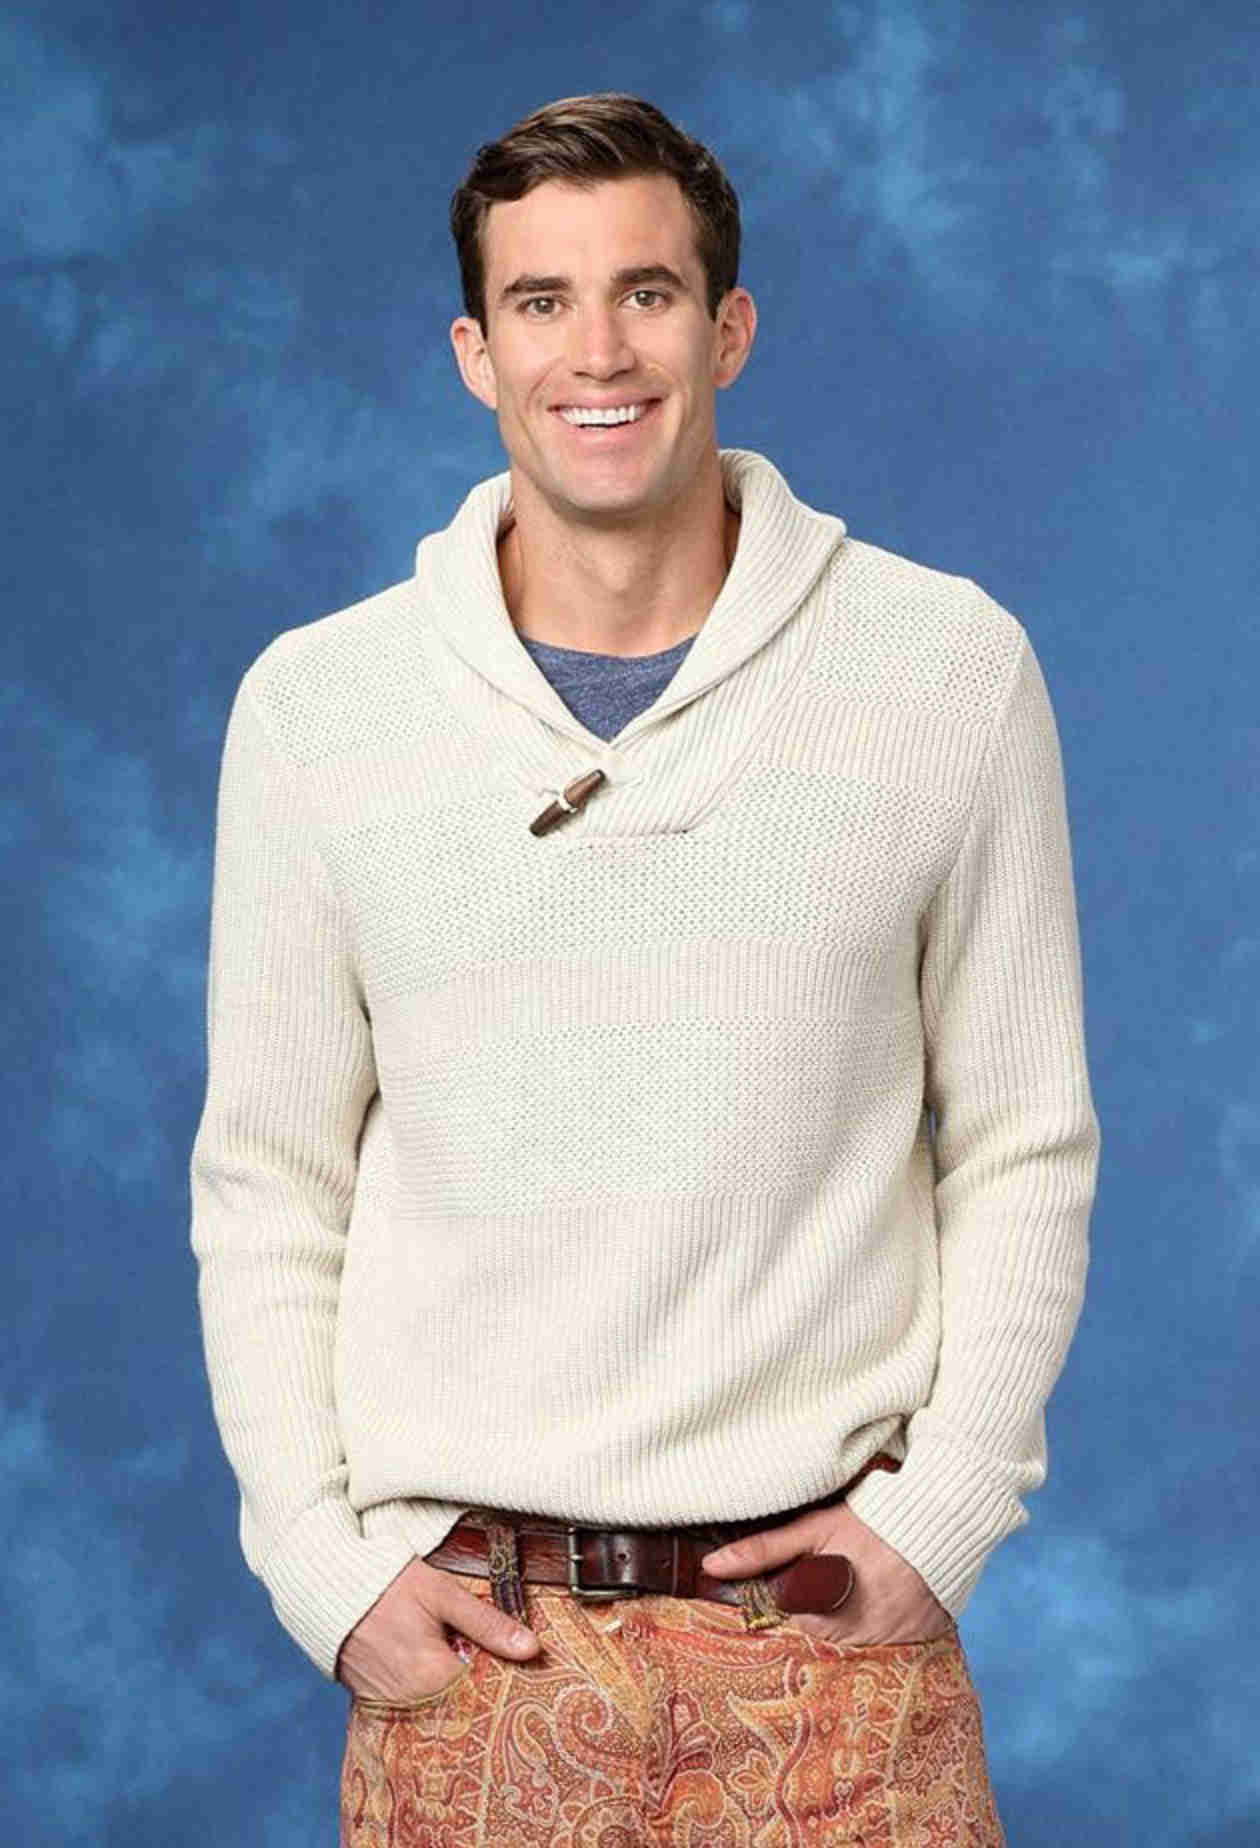 Bachelor 2015: Which of Andi Dorfman's Guys Should Be Cast?